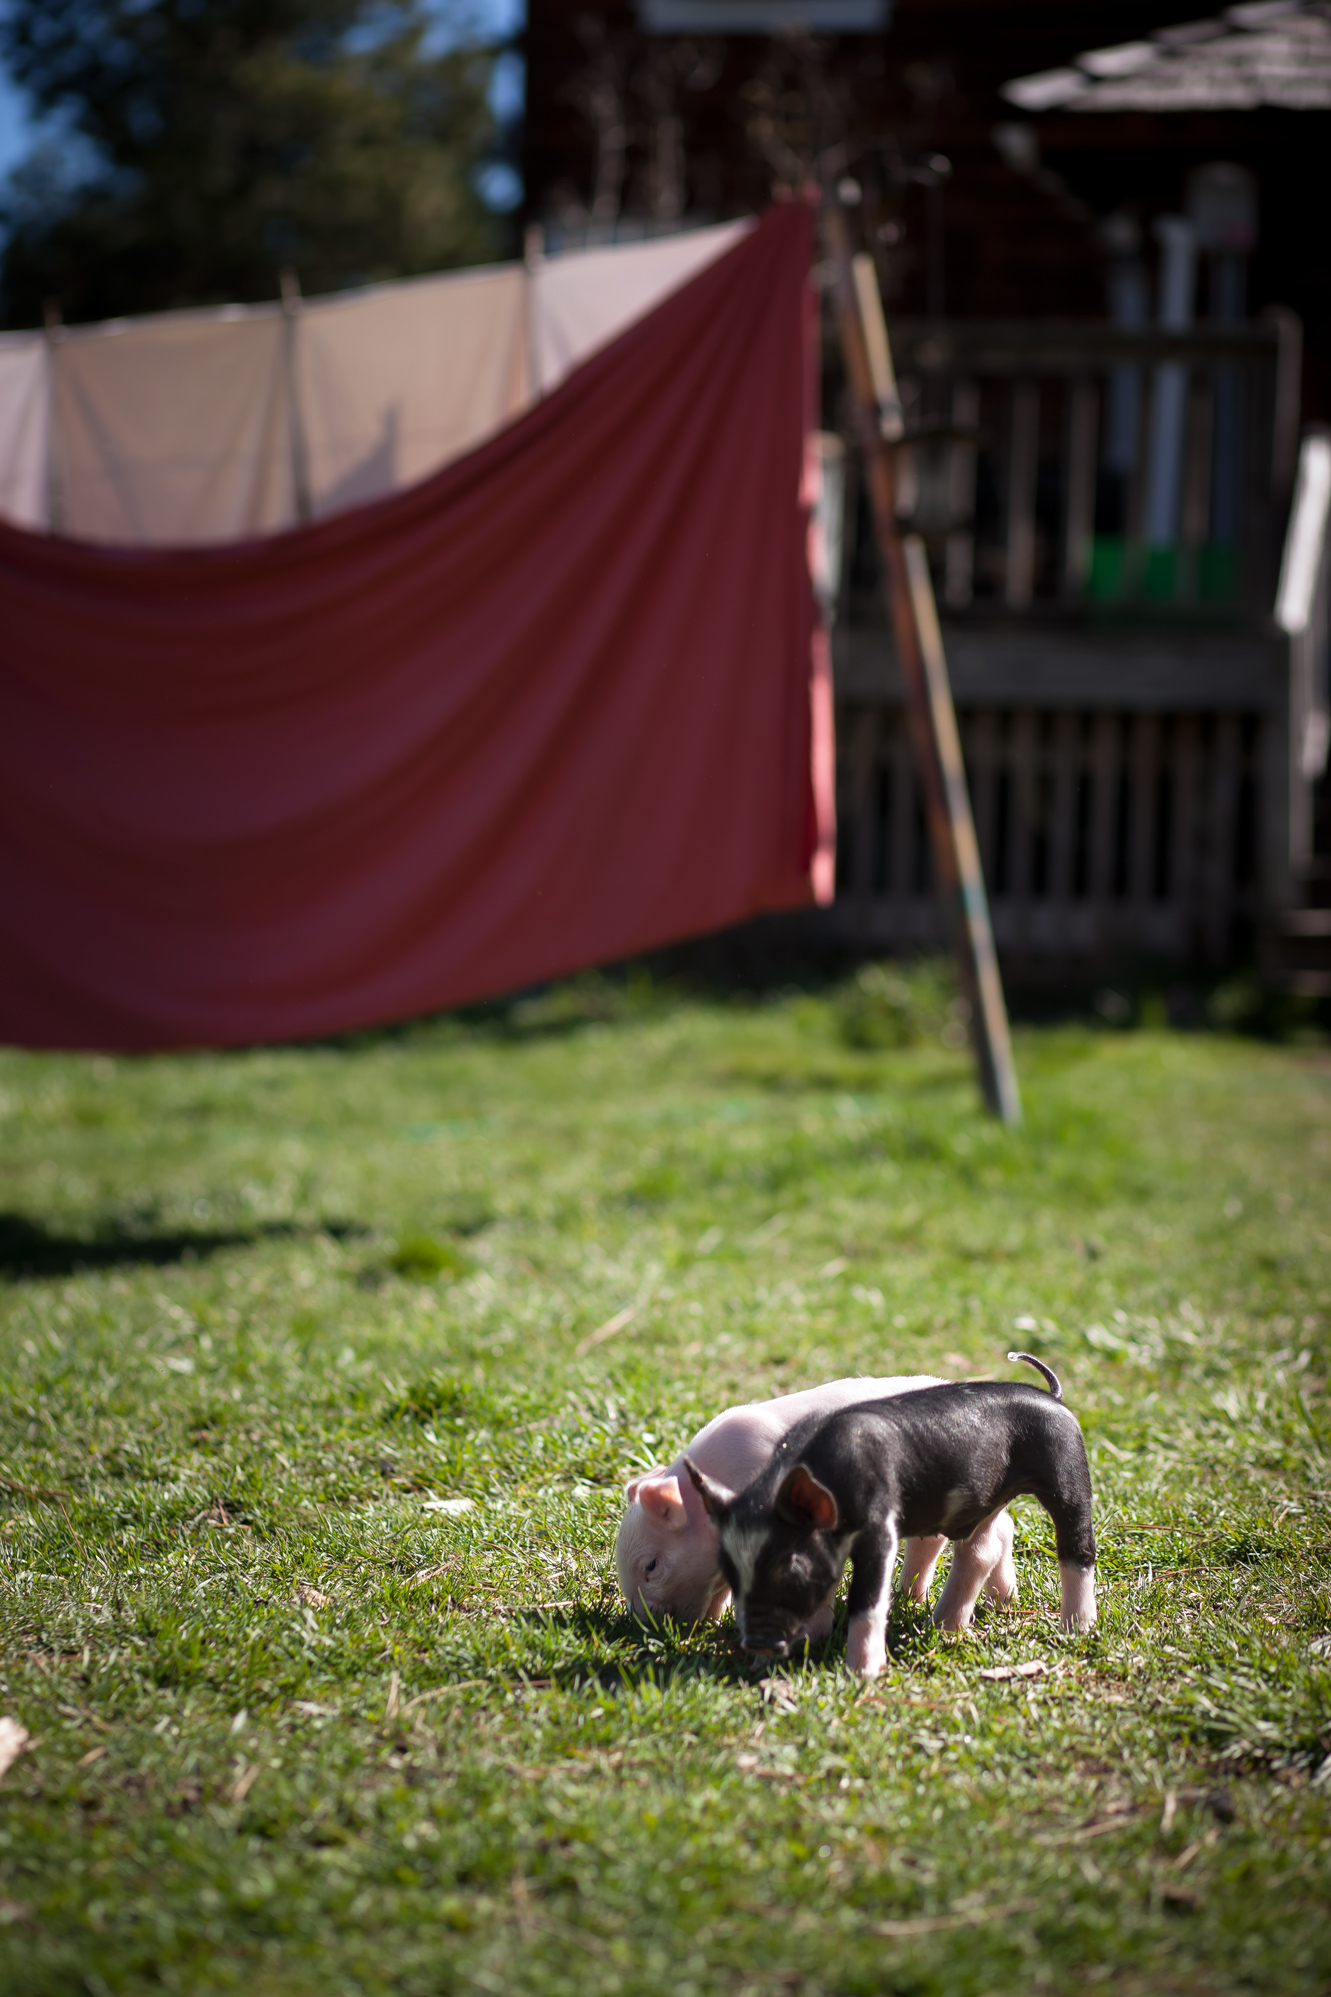 Berkshire Pork: Breeding and Raising Heritage Pigs